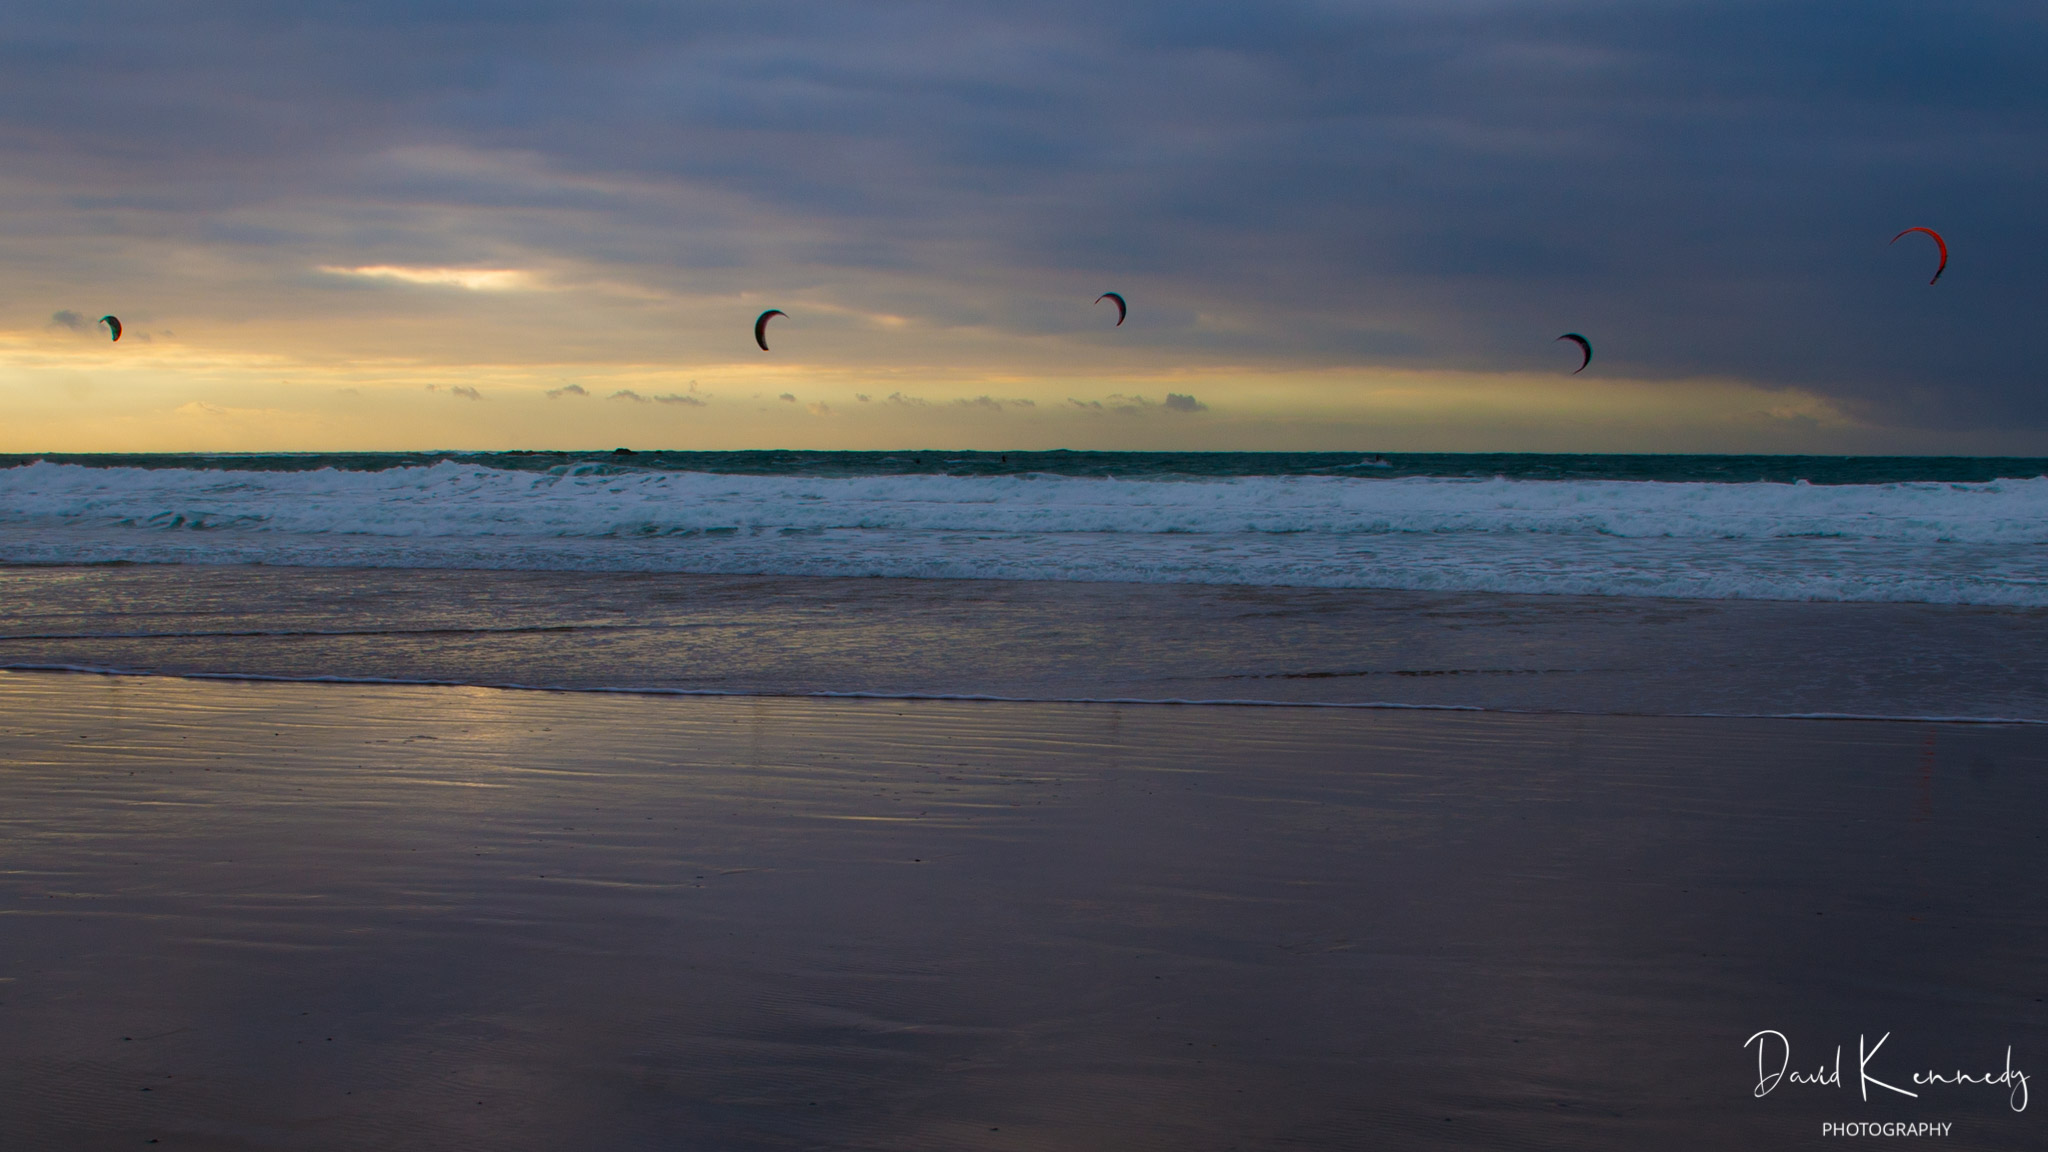 Beach and sky at sunset with five para surfers in action